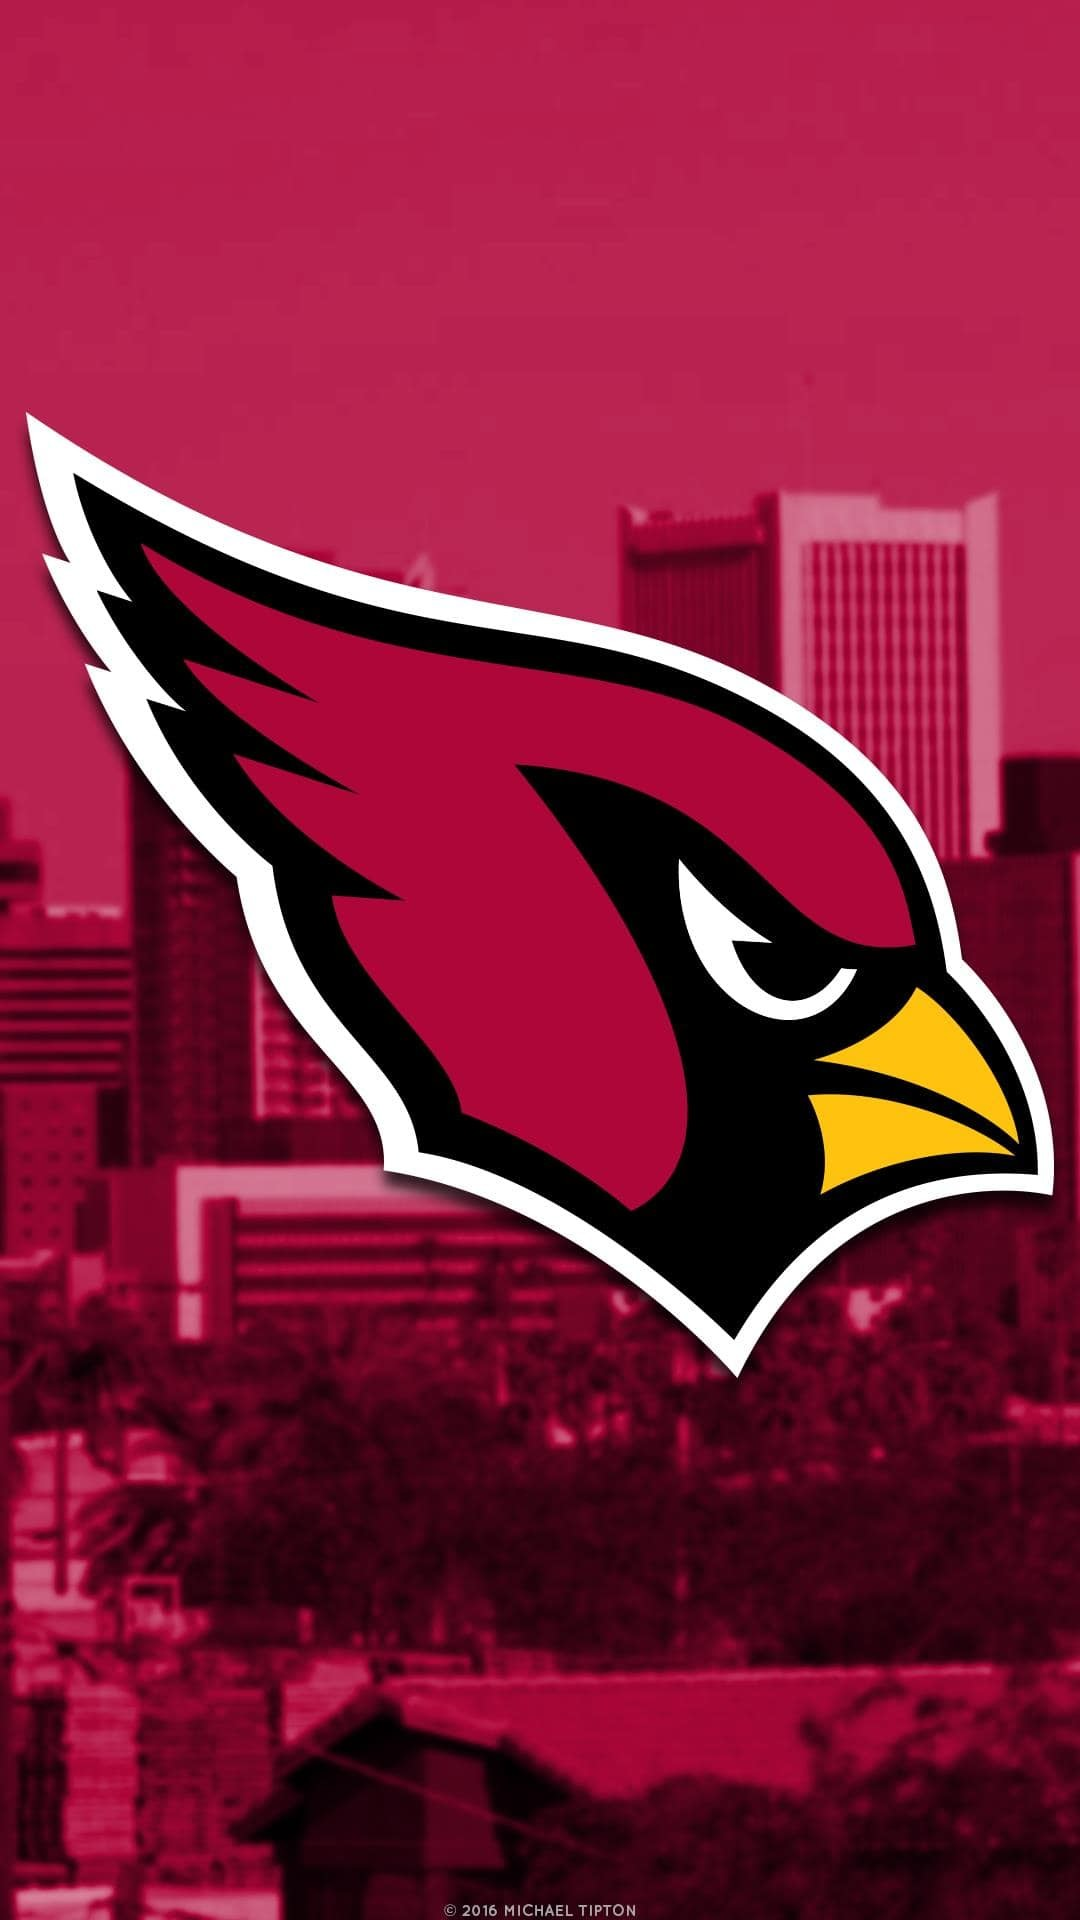 1080x1920 The Highest Quality Arizona Cardinals Football Schedule Wallpapers and Logo  Backgrounds for iPhone, Andriod, Galaxy, and Desktop PC.